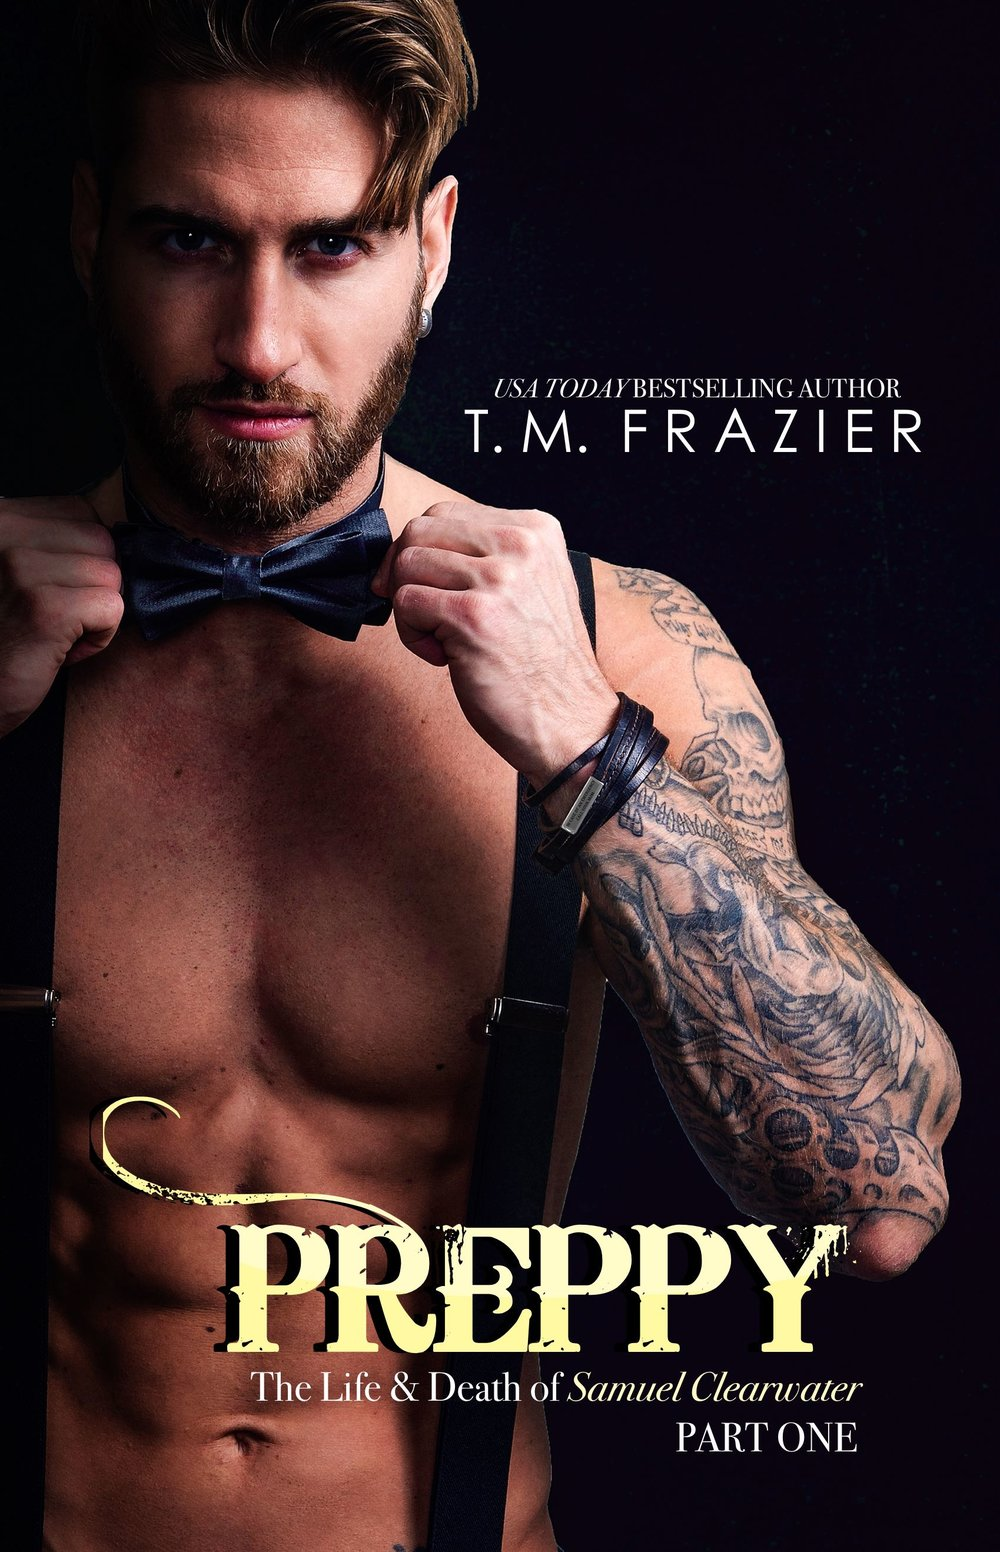 Preppy, The Life & Death of Samuel Clearwater Part One by TM Frazer